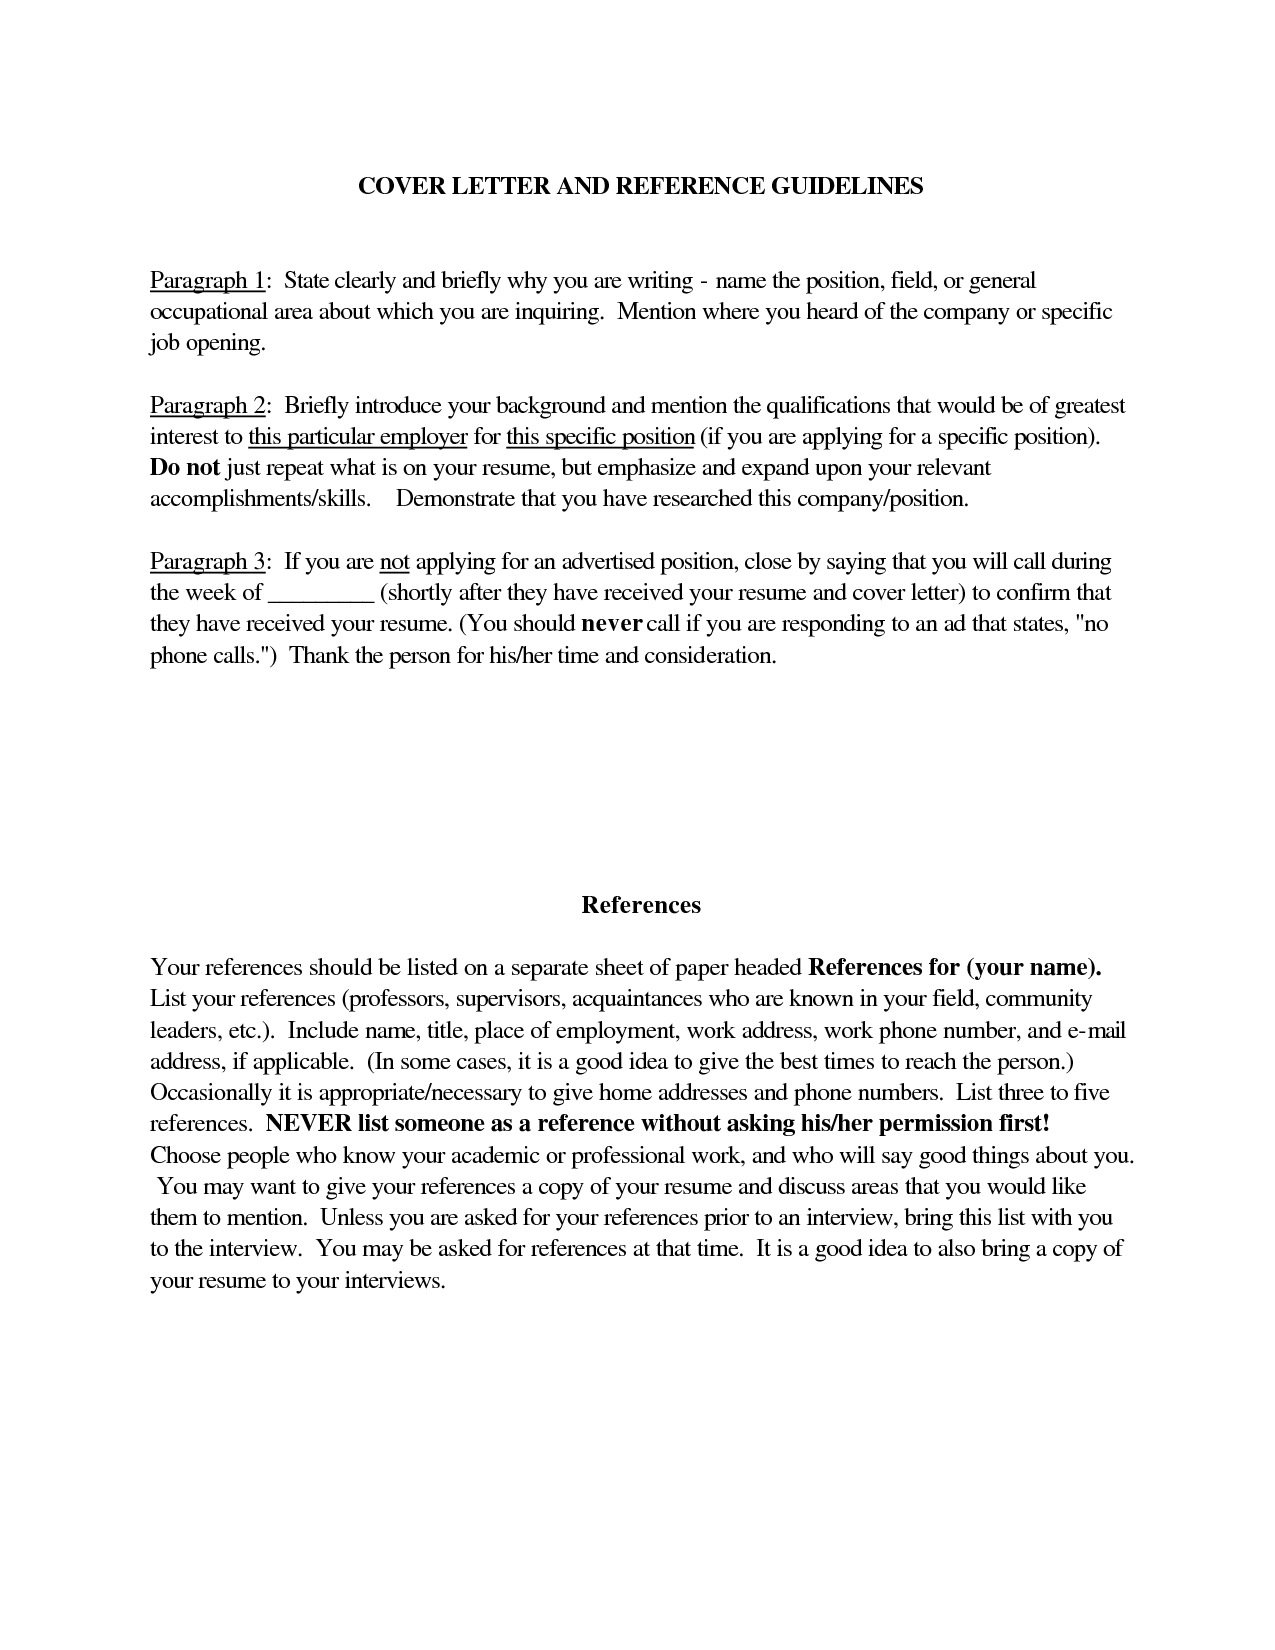 Guidelines For A Resume Simple Doc Closing Paragraph Cover Letter Thank You Ending  Job .